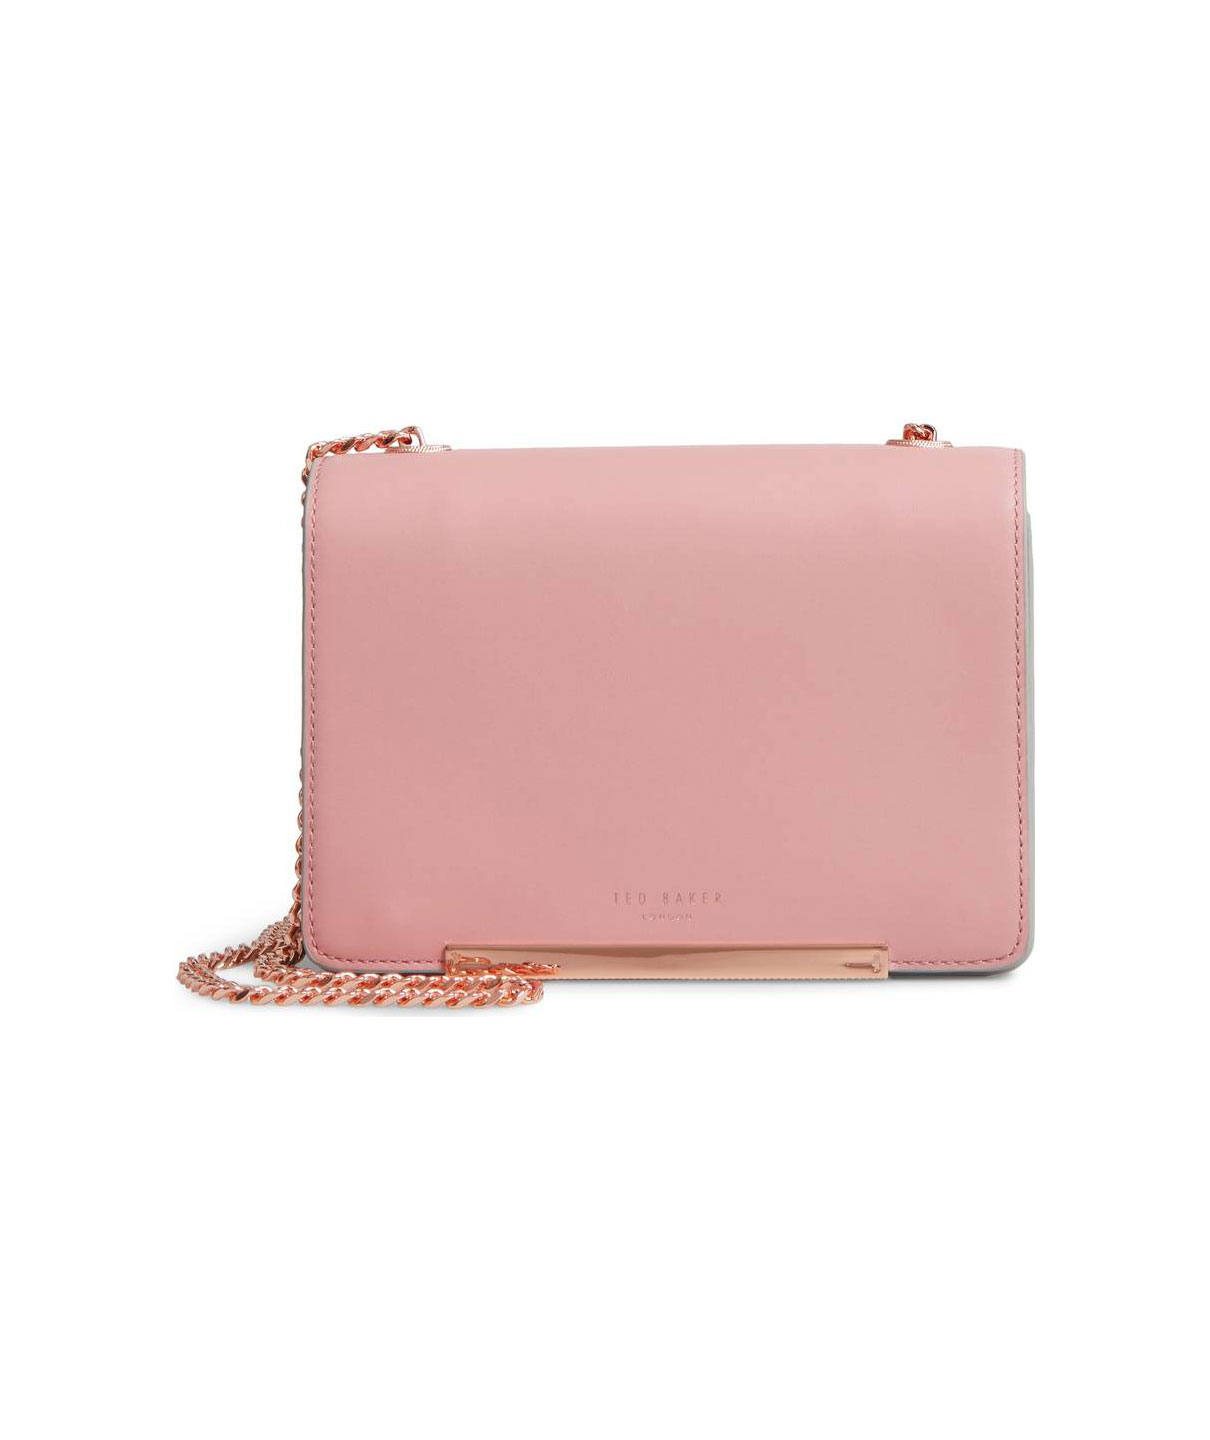 Grab These 5 Designer Purses Before They Sell out at Nordstrom s ... f4779db473bae